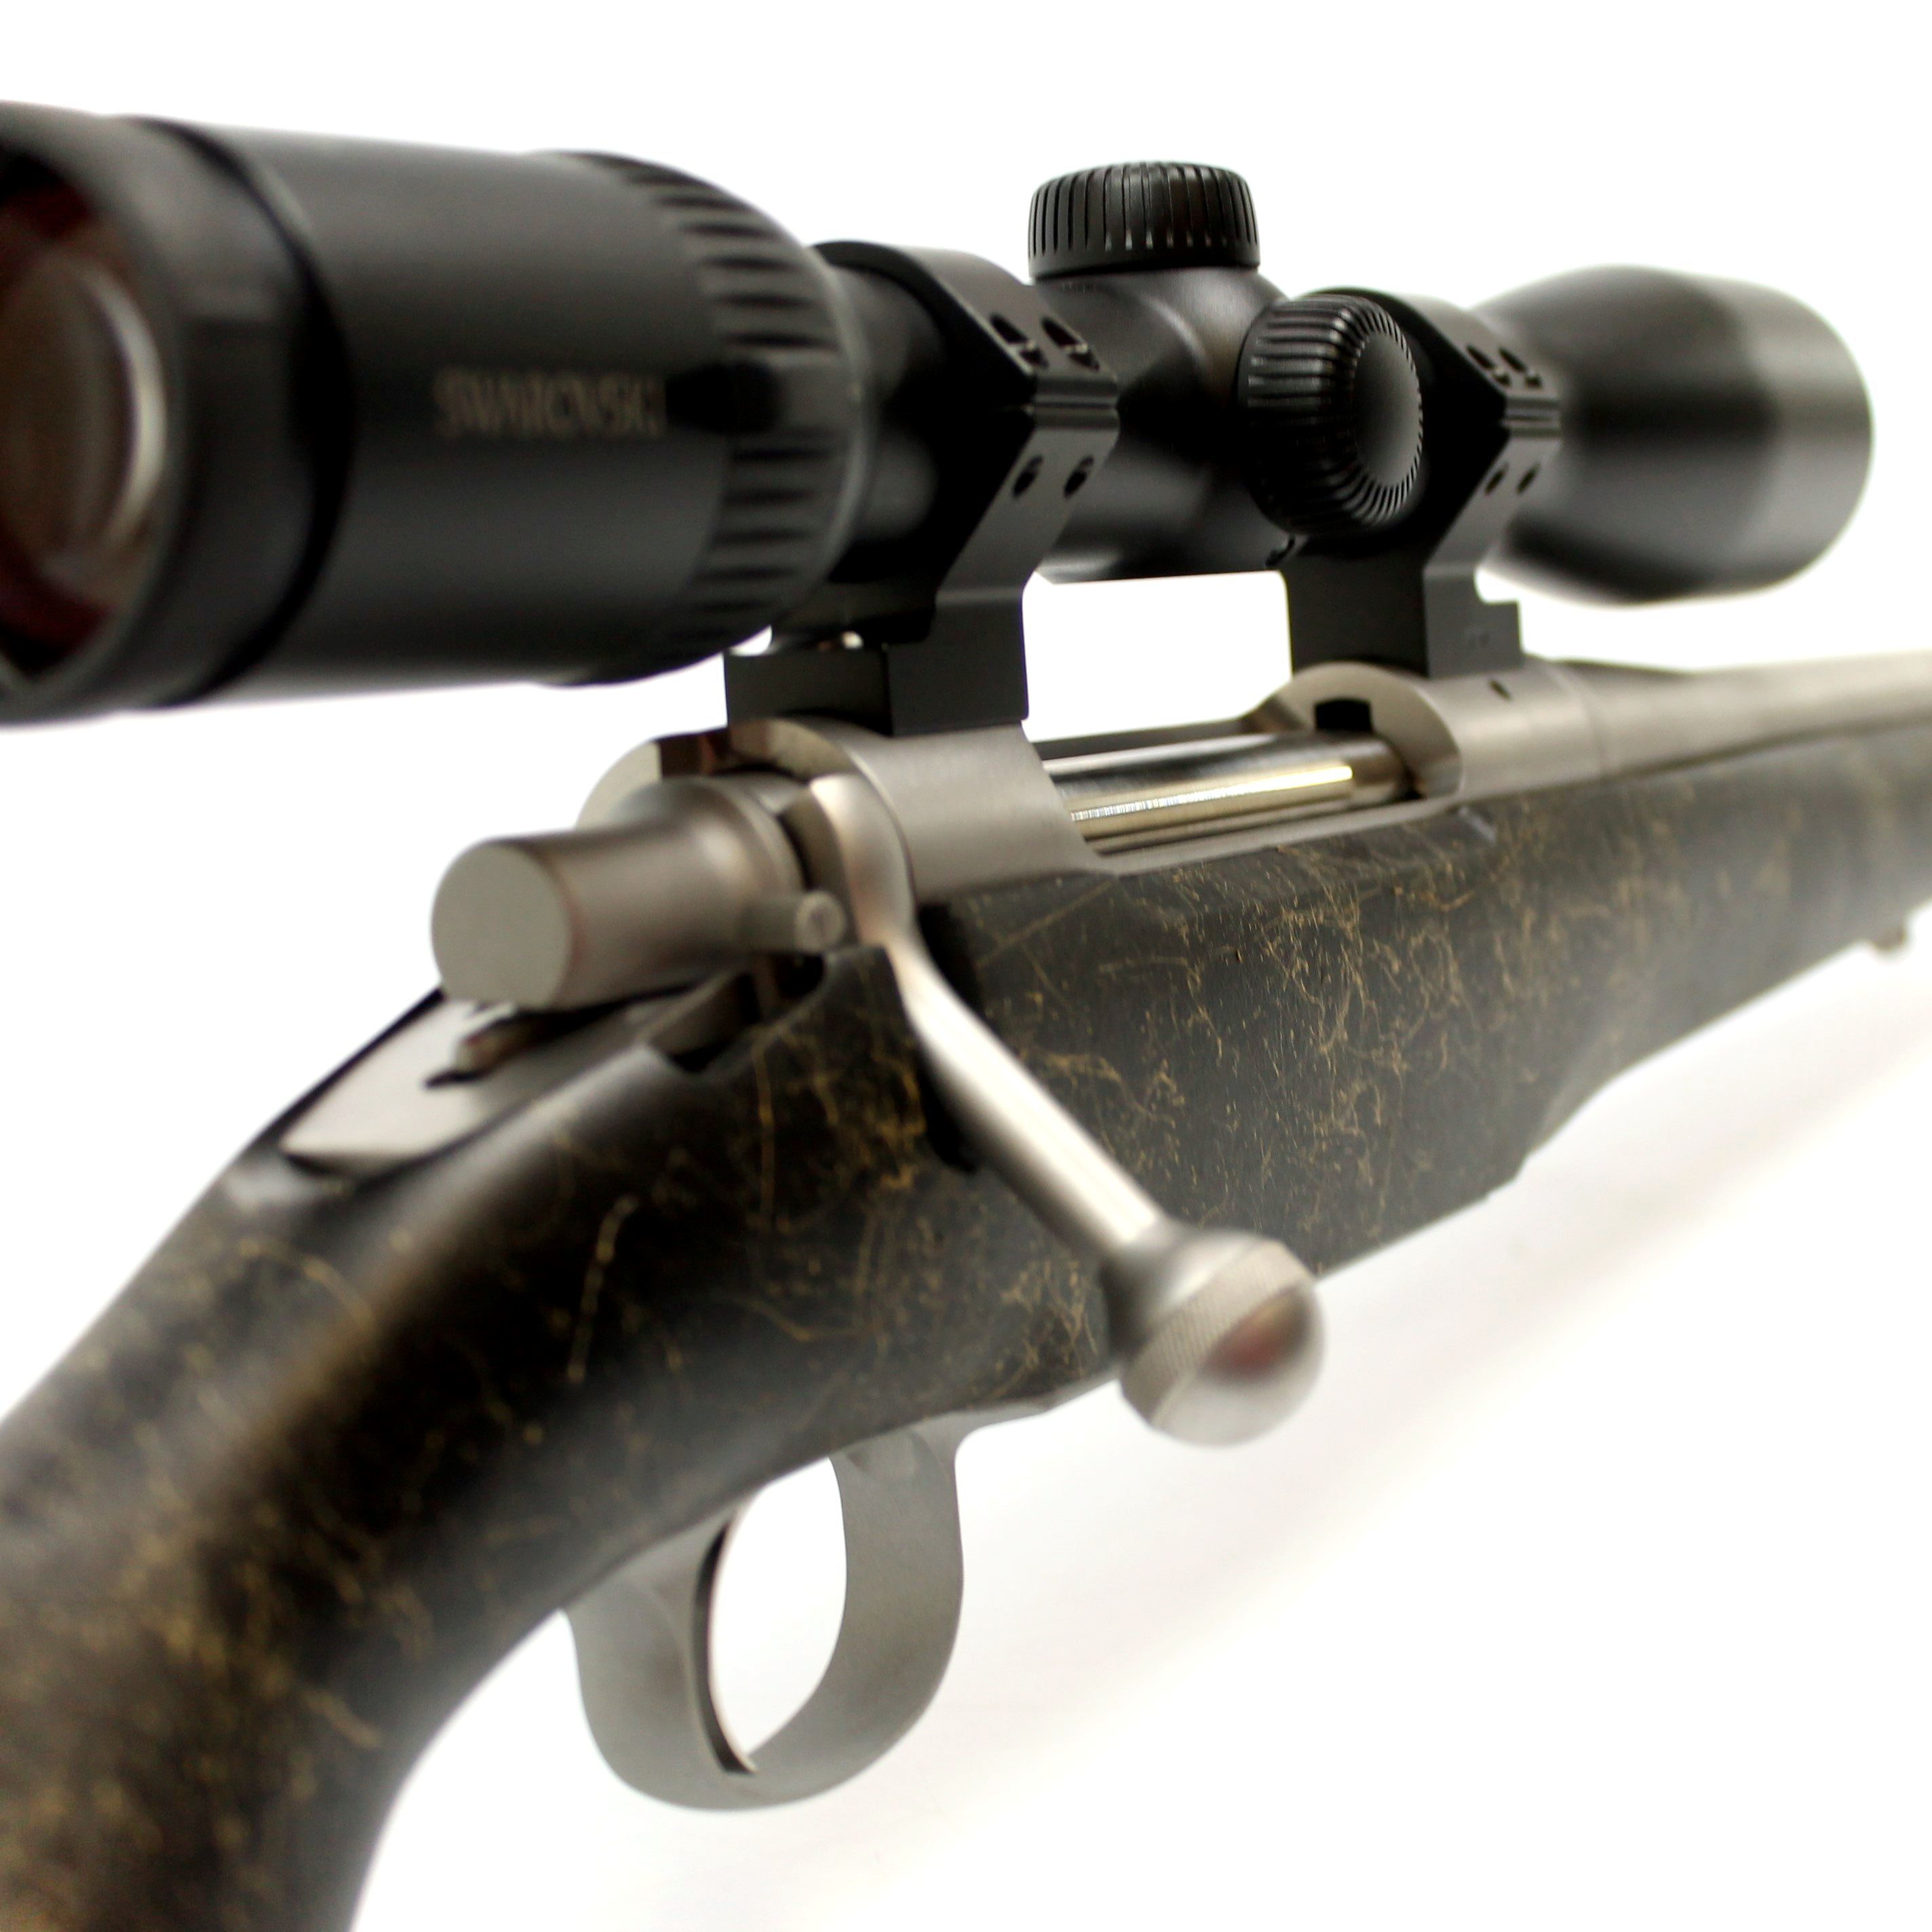 Cooper M52 Timberline .280 AI Long-Range Package, Including Zeroed-In Swarovski Z6 2.5-15x44 Scope